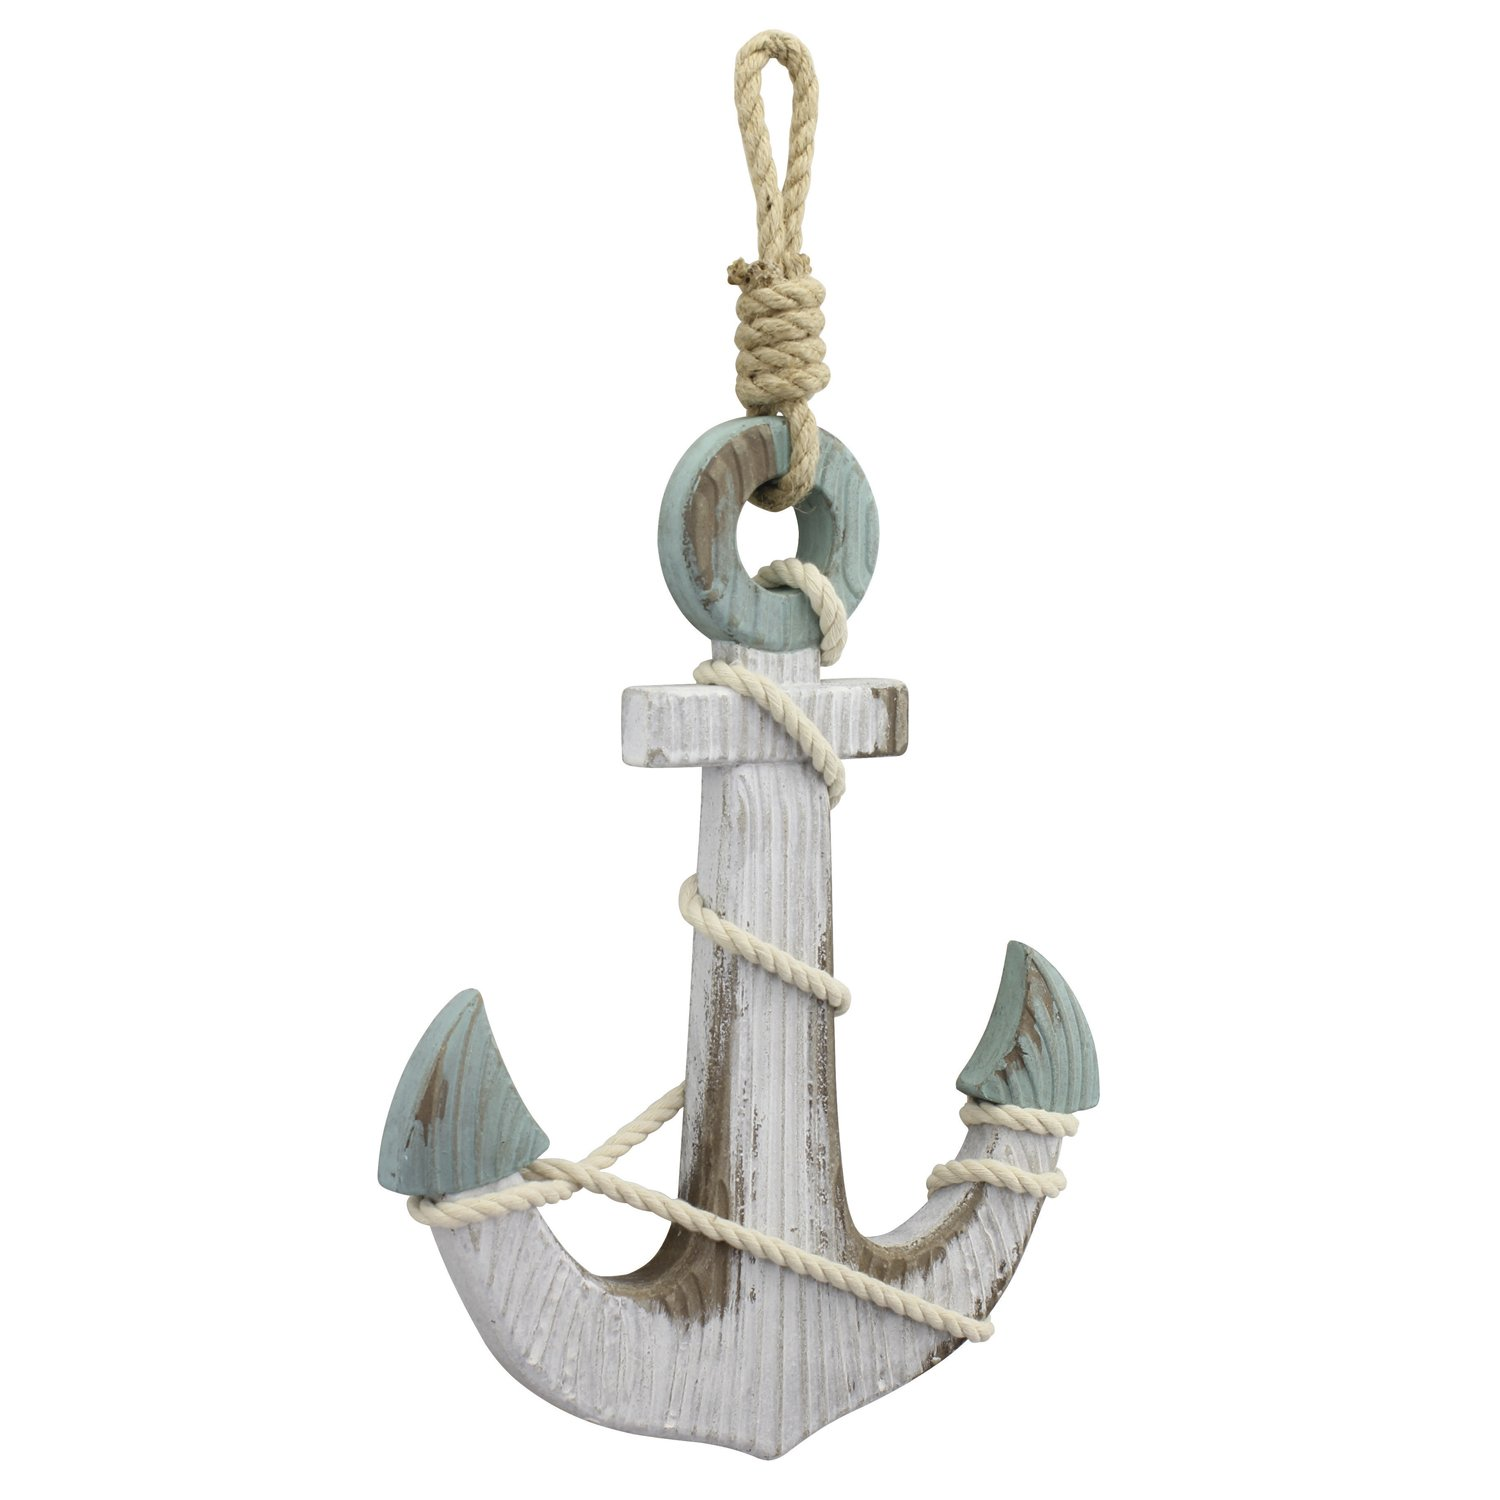 Stonebriar Anchor Wall Decor, Worn White